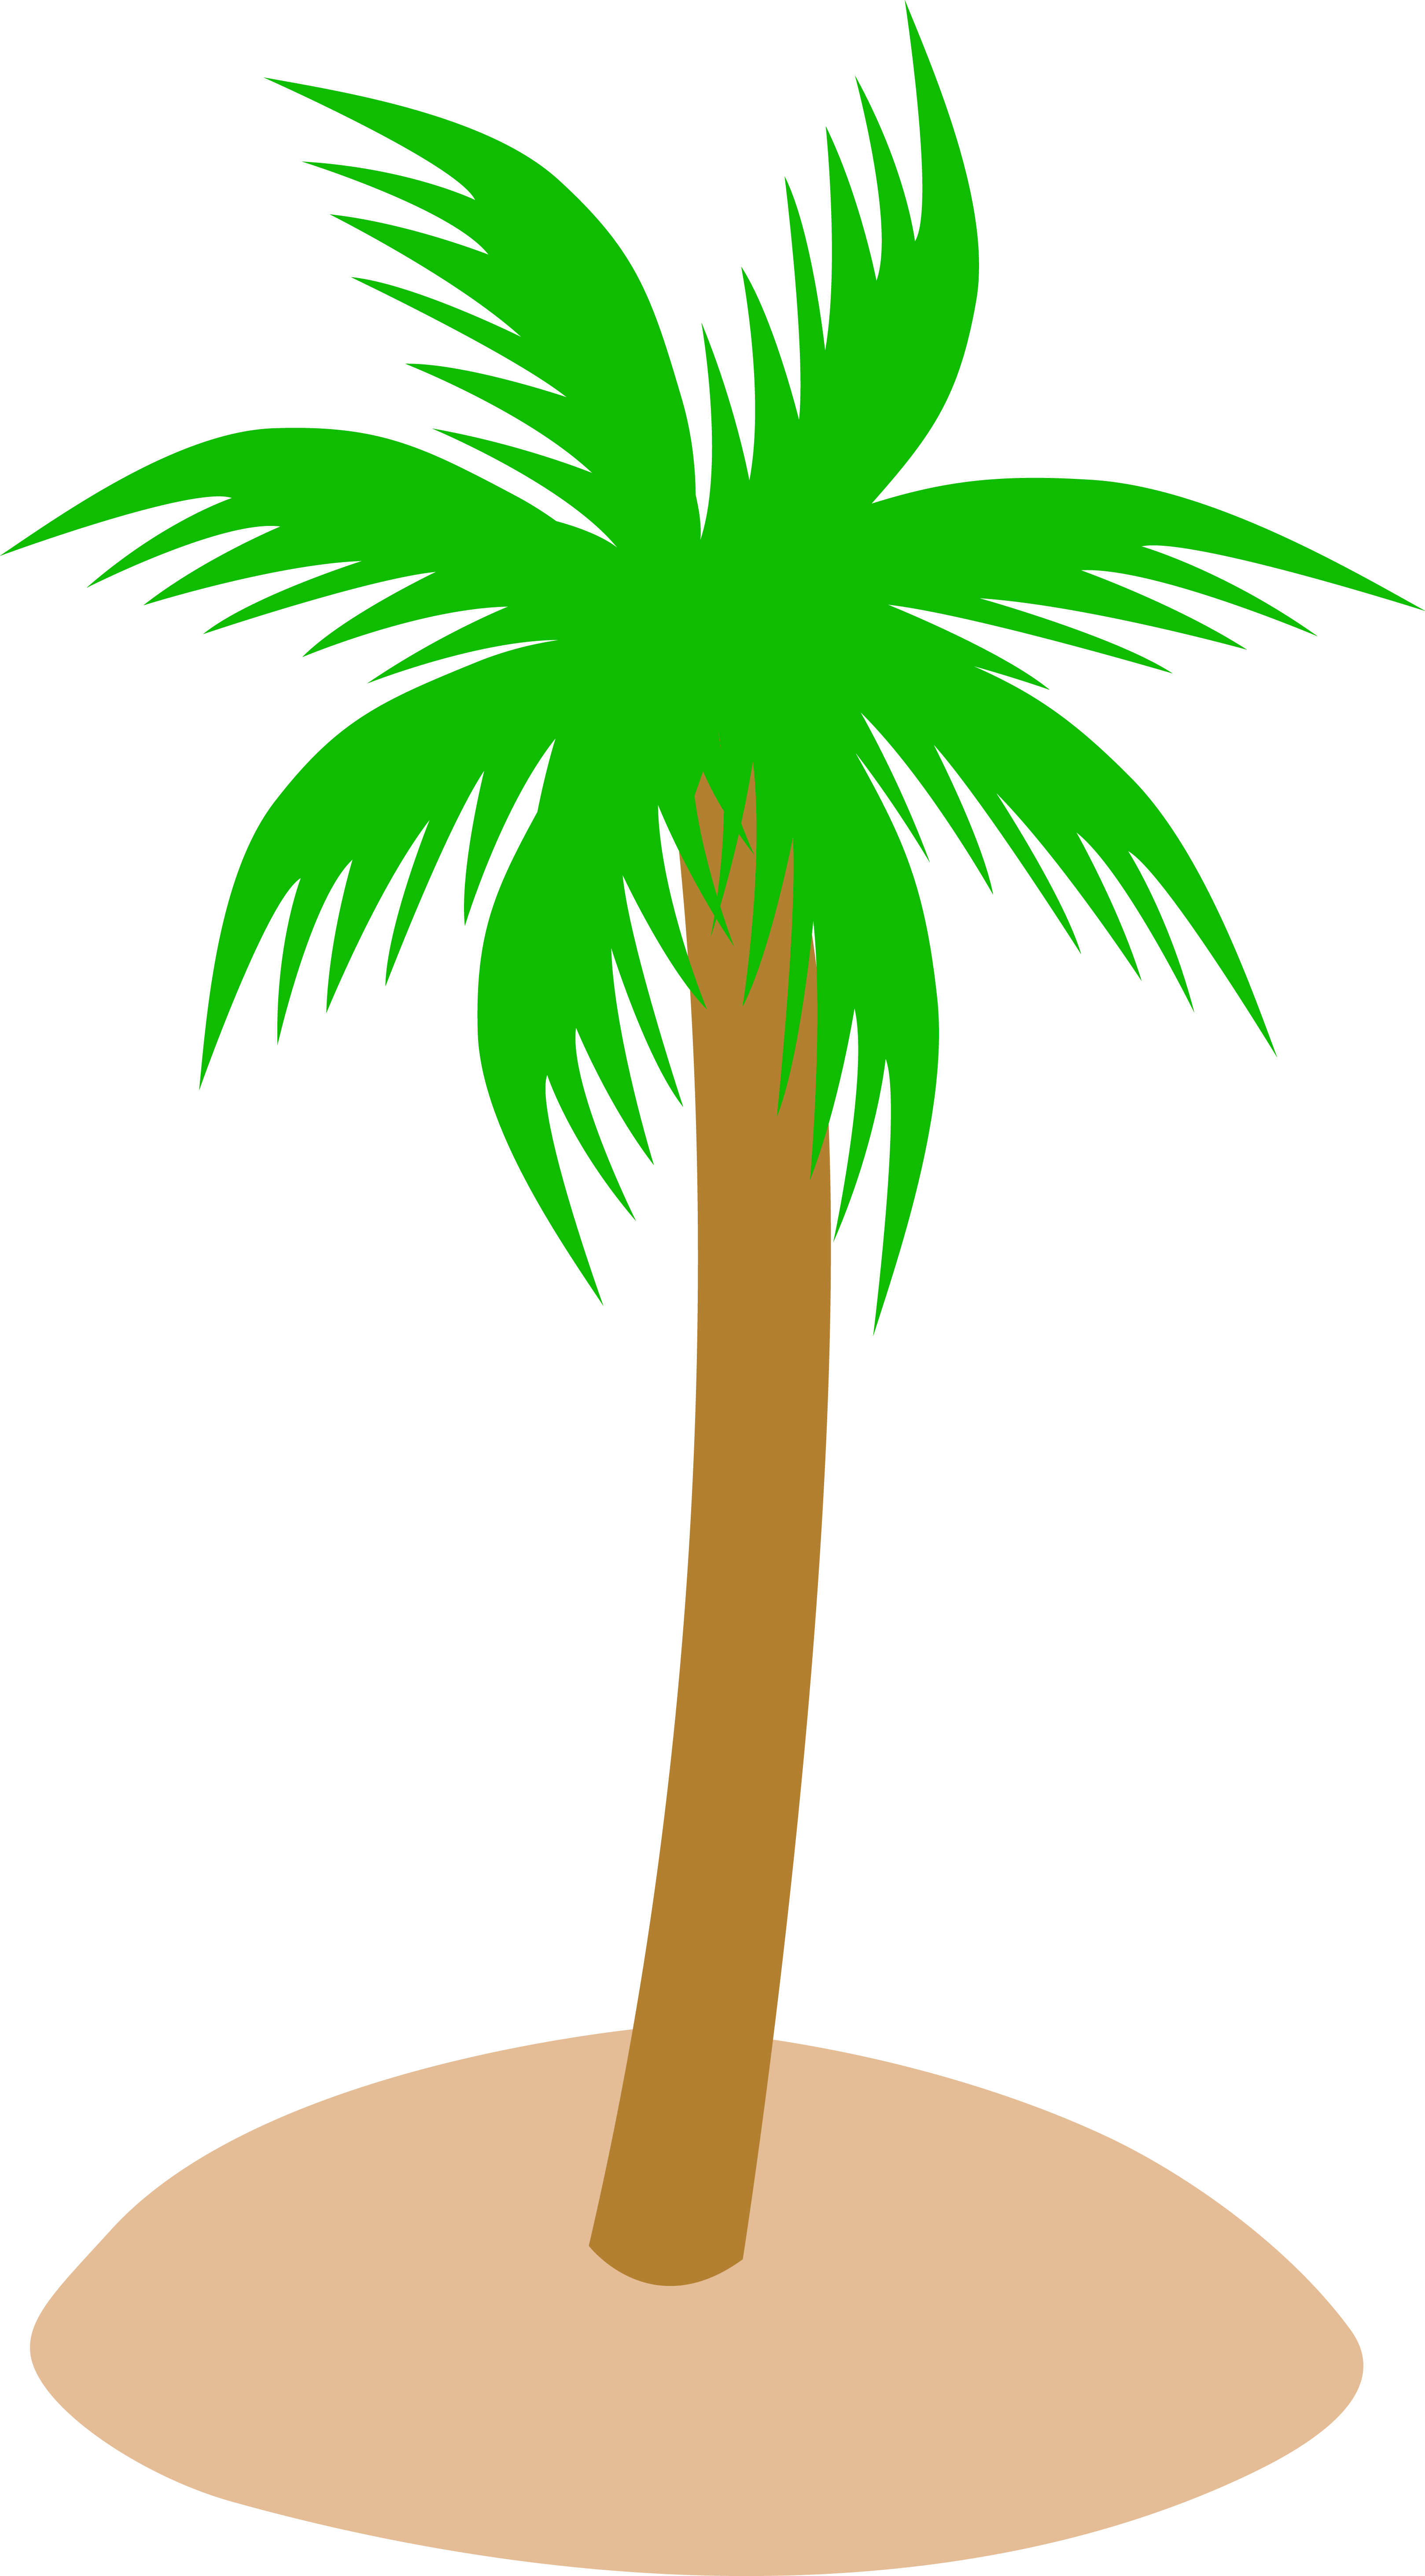 Island palm tree clipart png black and white Tropical Palm Tree in Sand - Free Clip Art png black and white